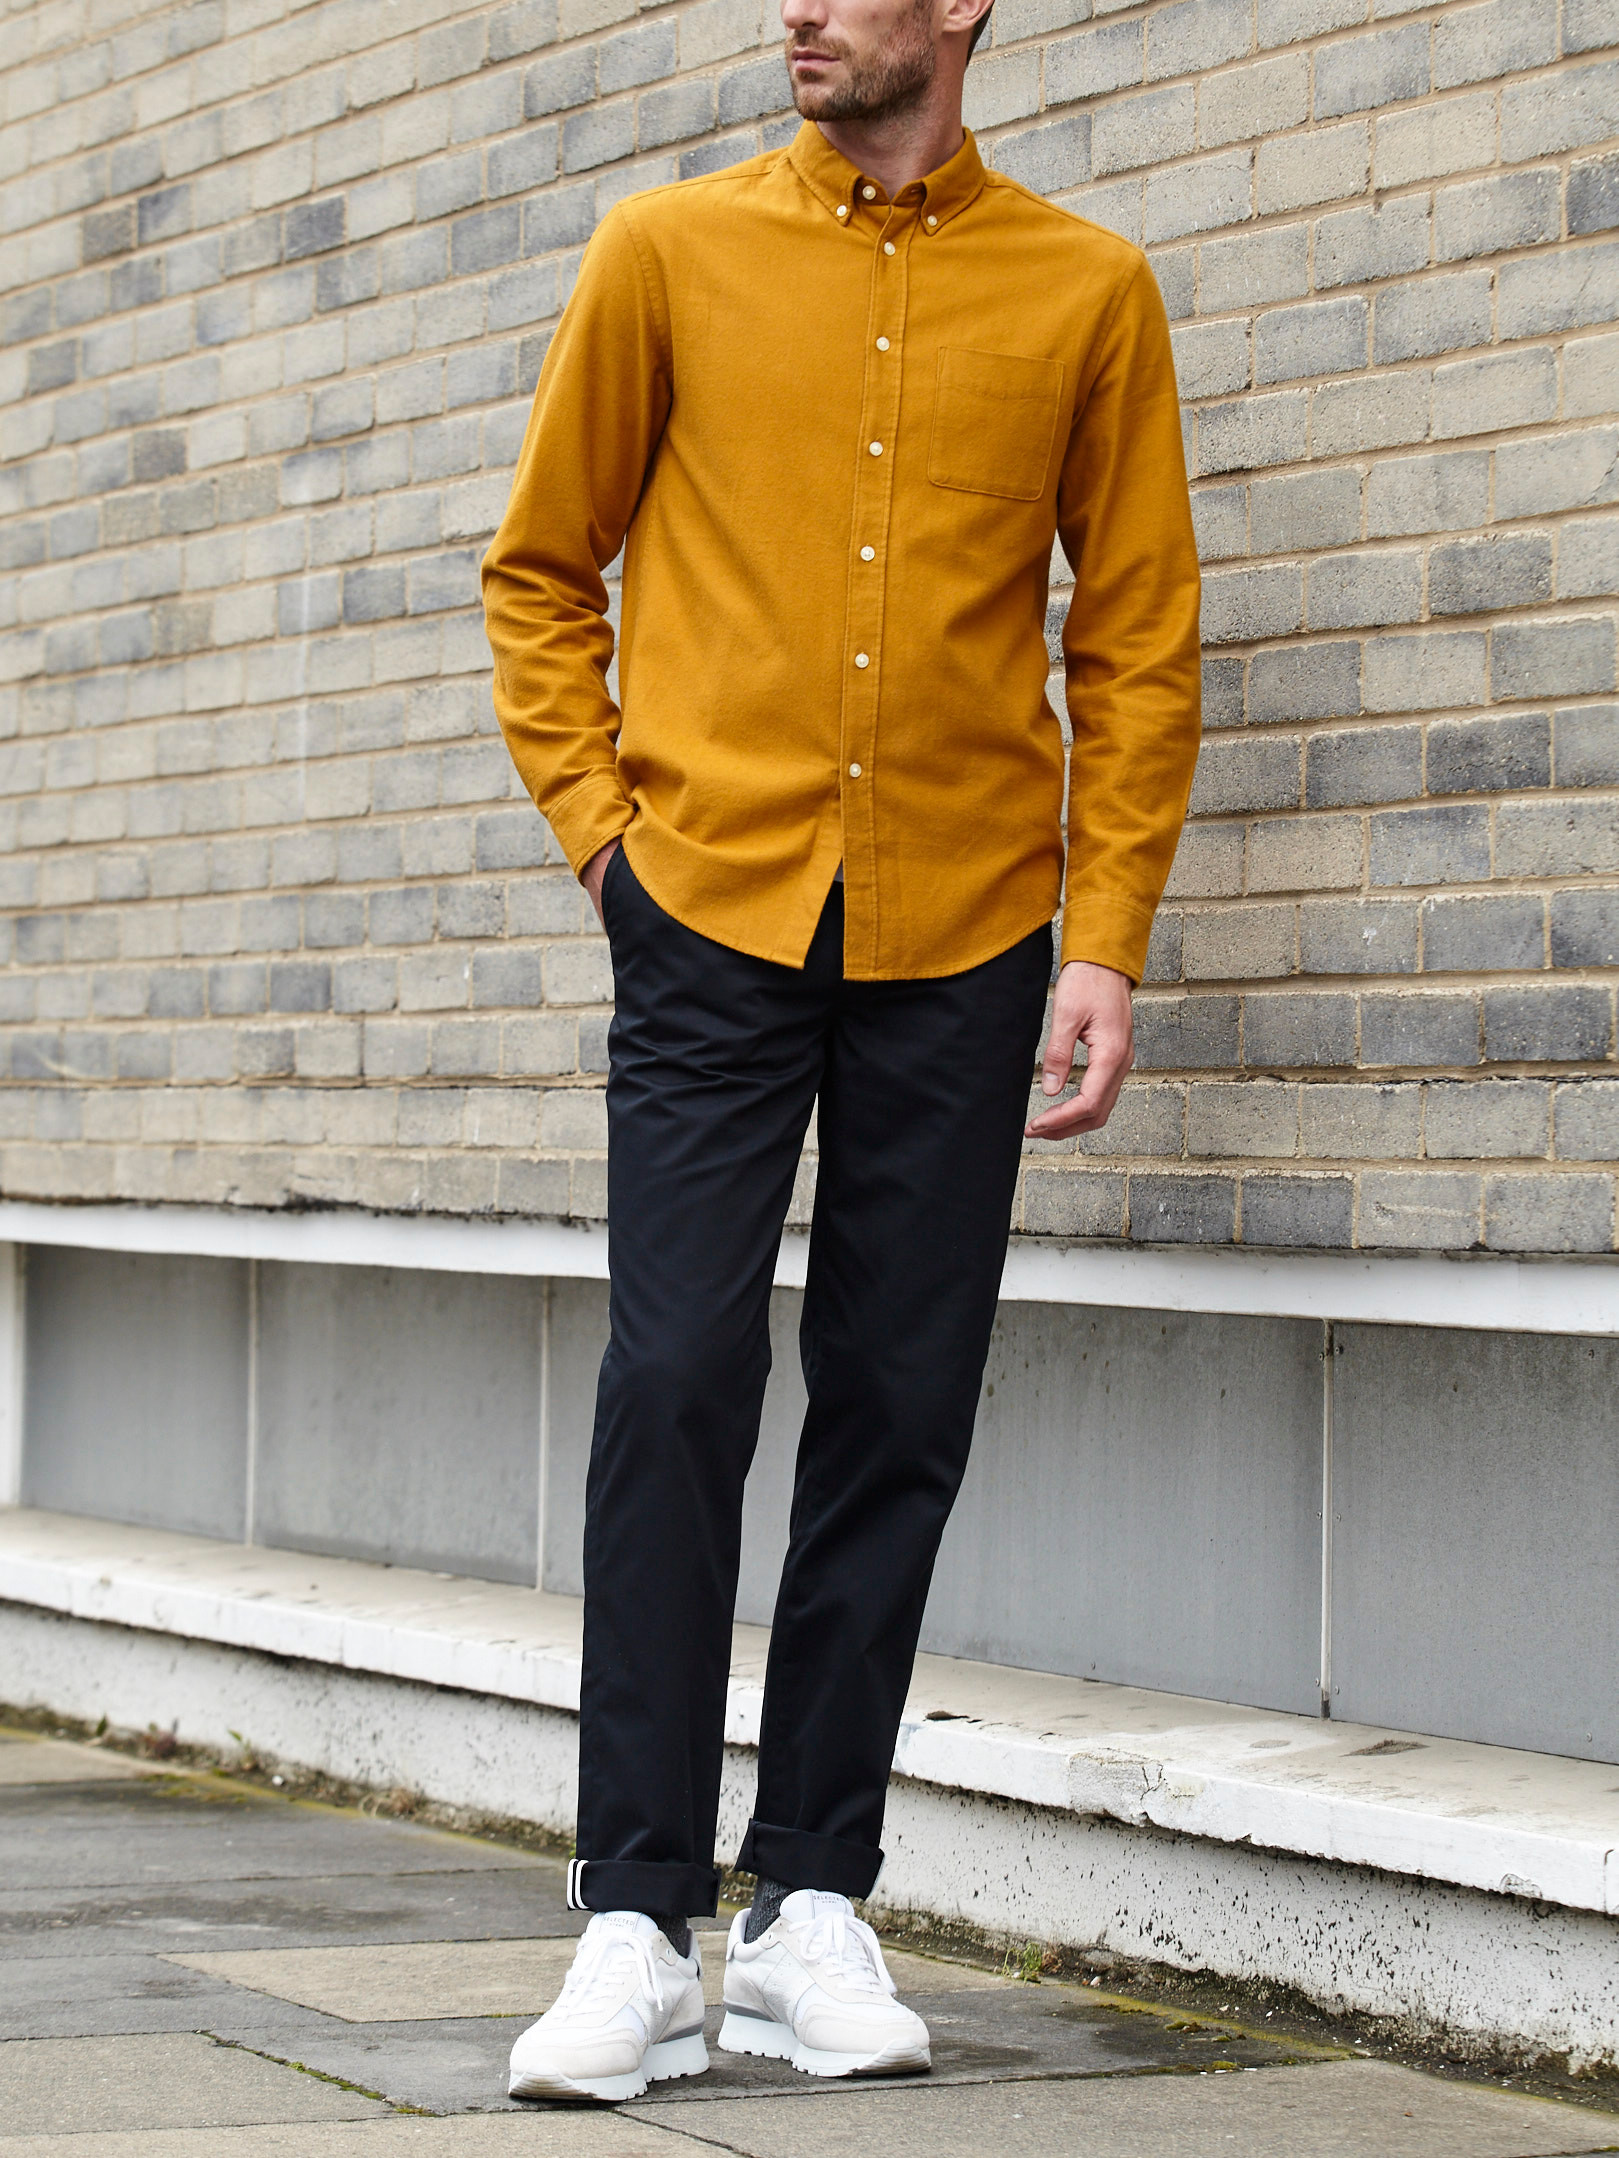 Men's outfit idea for 2021 with bold-colored casual shirt, navy chinos, white sneakers. Suitable for spring and fall.